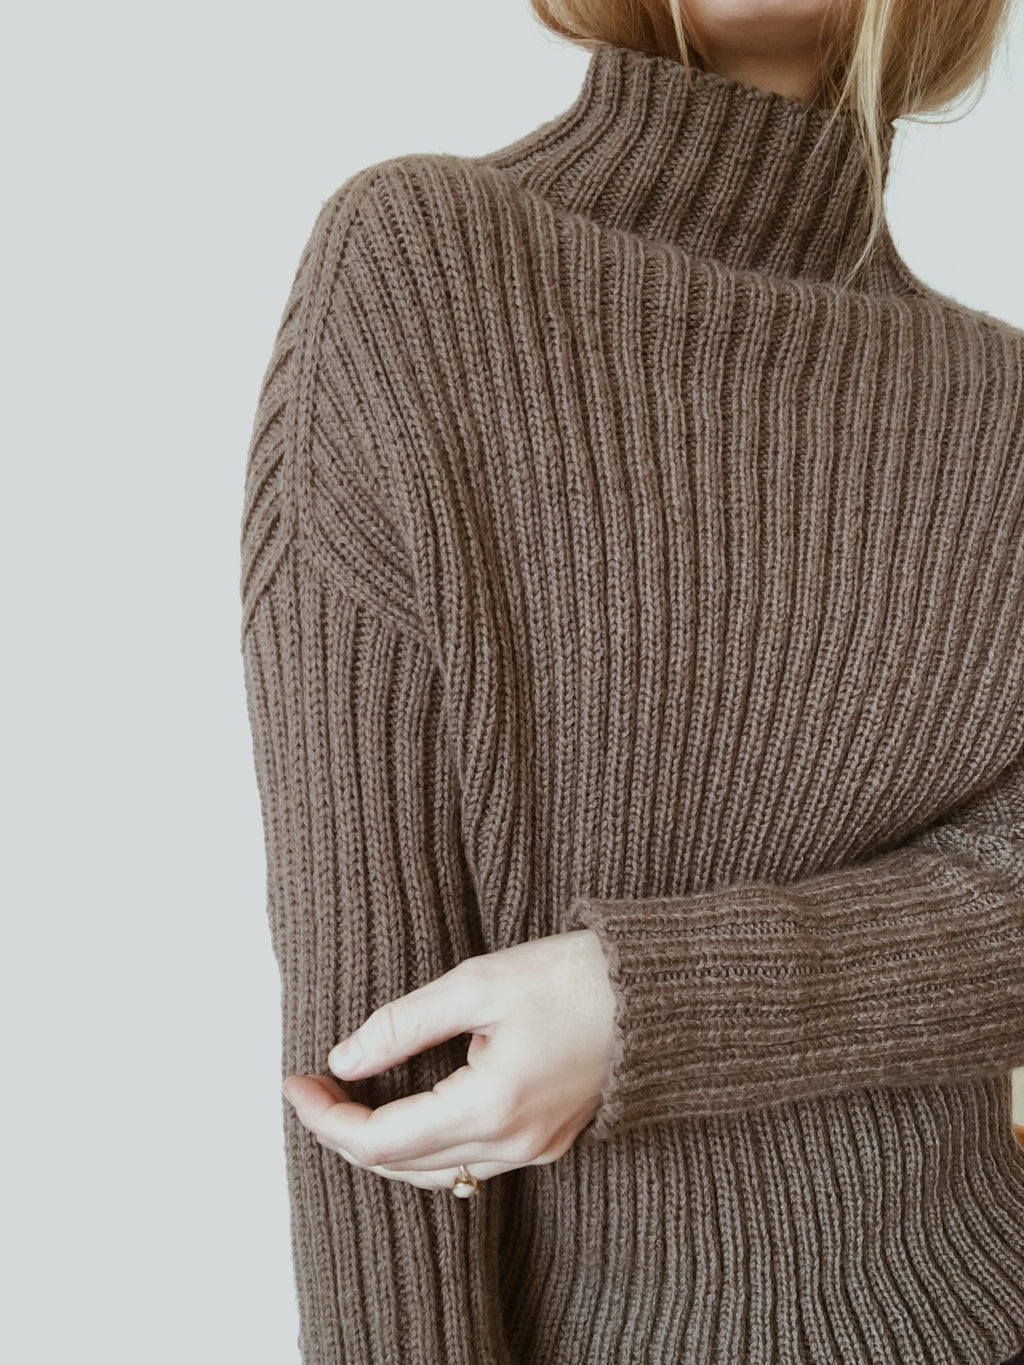 Sweater No. 8 - NO